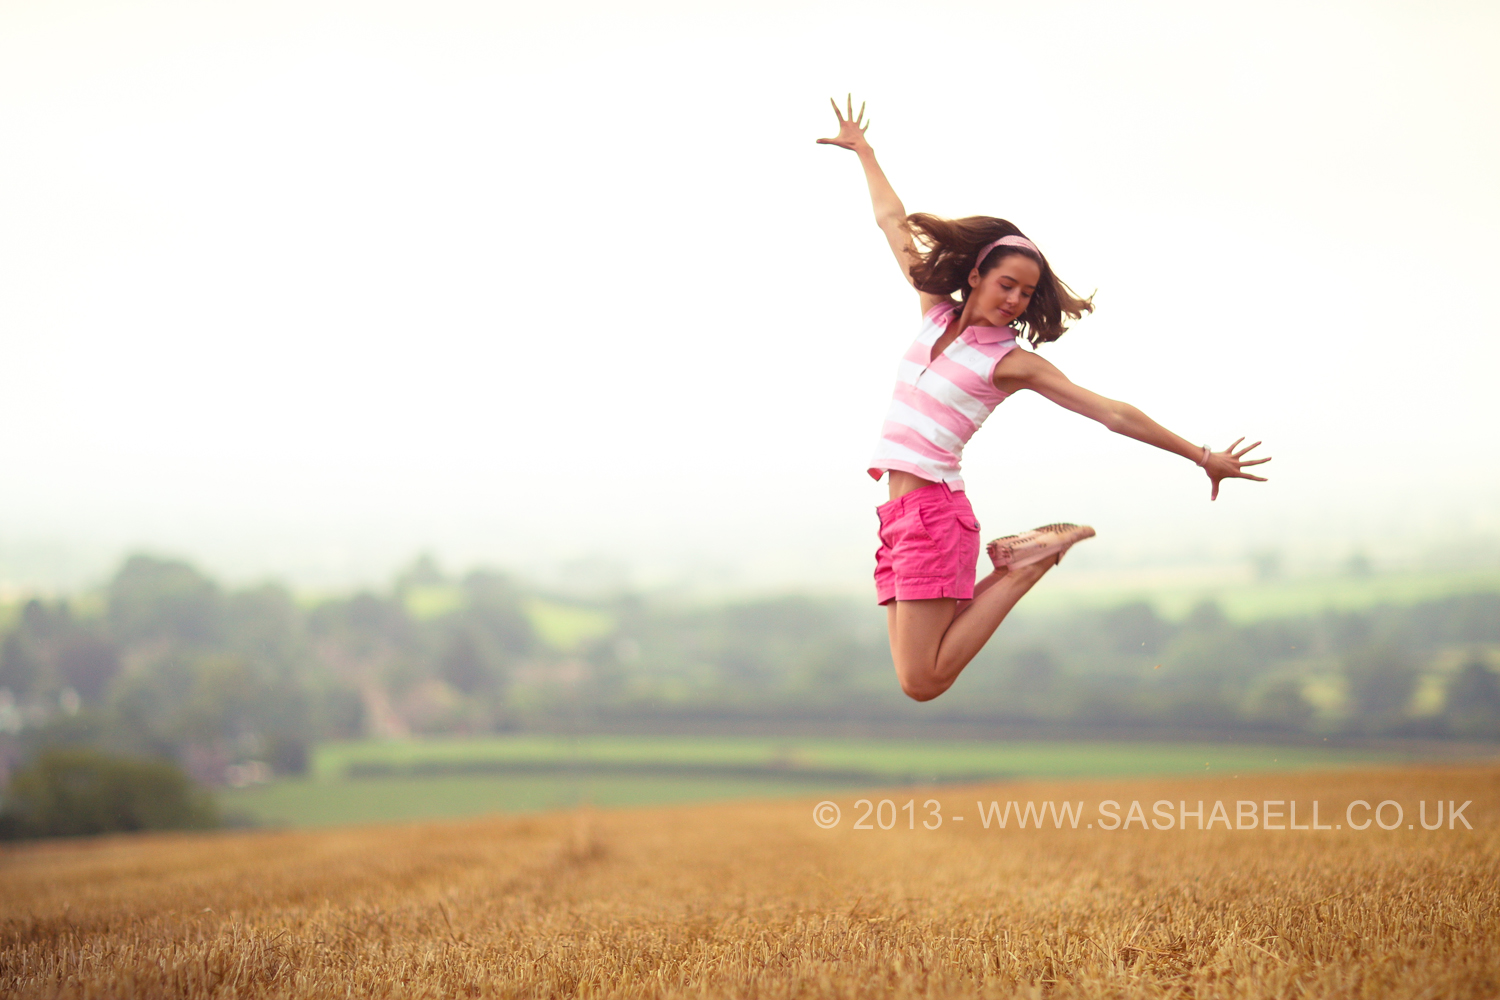 Jumping in the Summer – Day 325/365